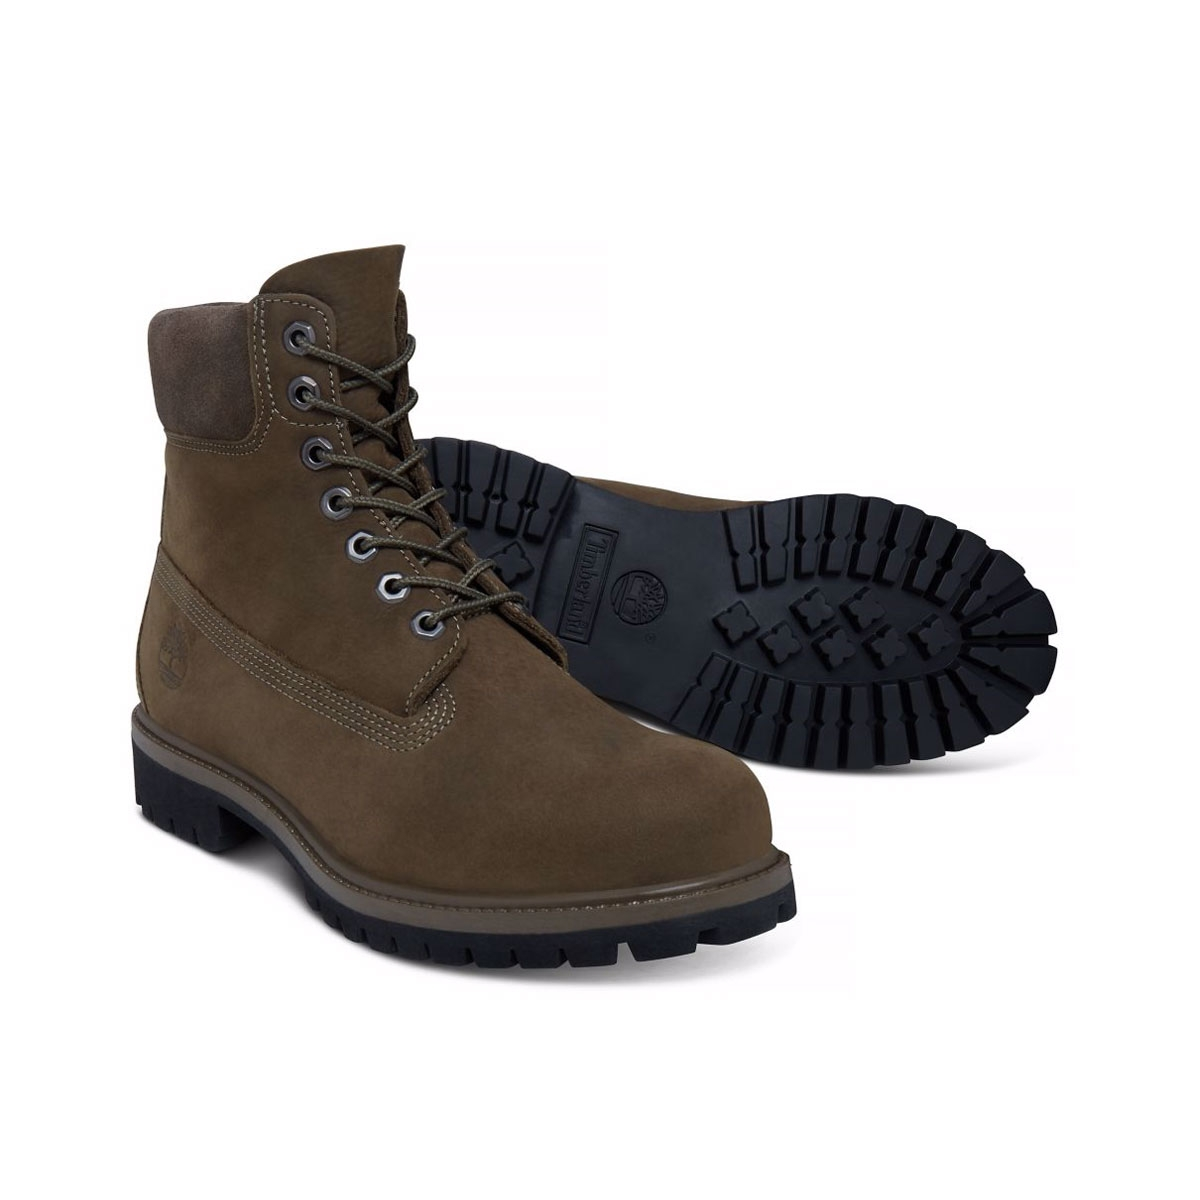 ef731ffd02b Image of Timberland Classic 6 Inch Premium Boots (Men s) - Canteen Vecchio  (Olive